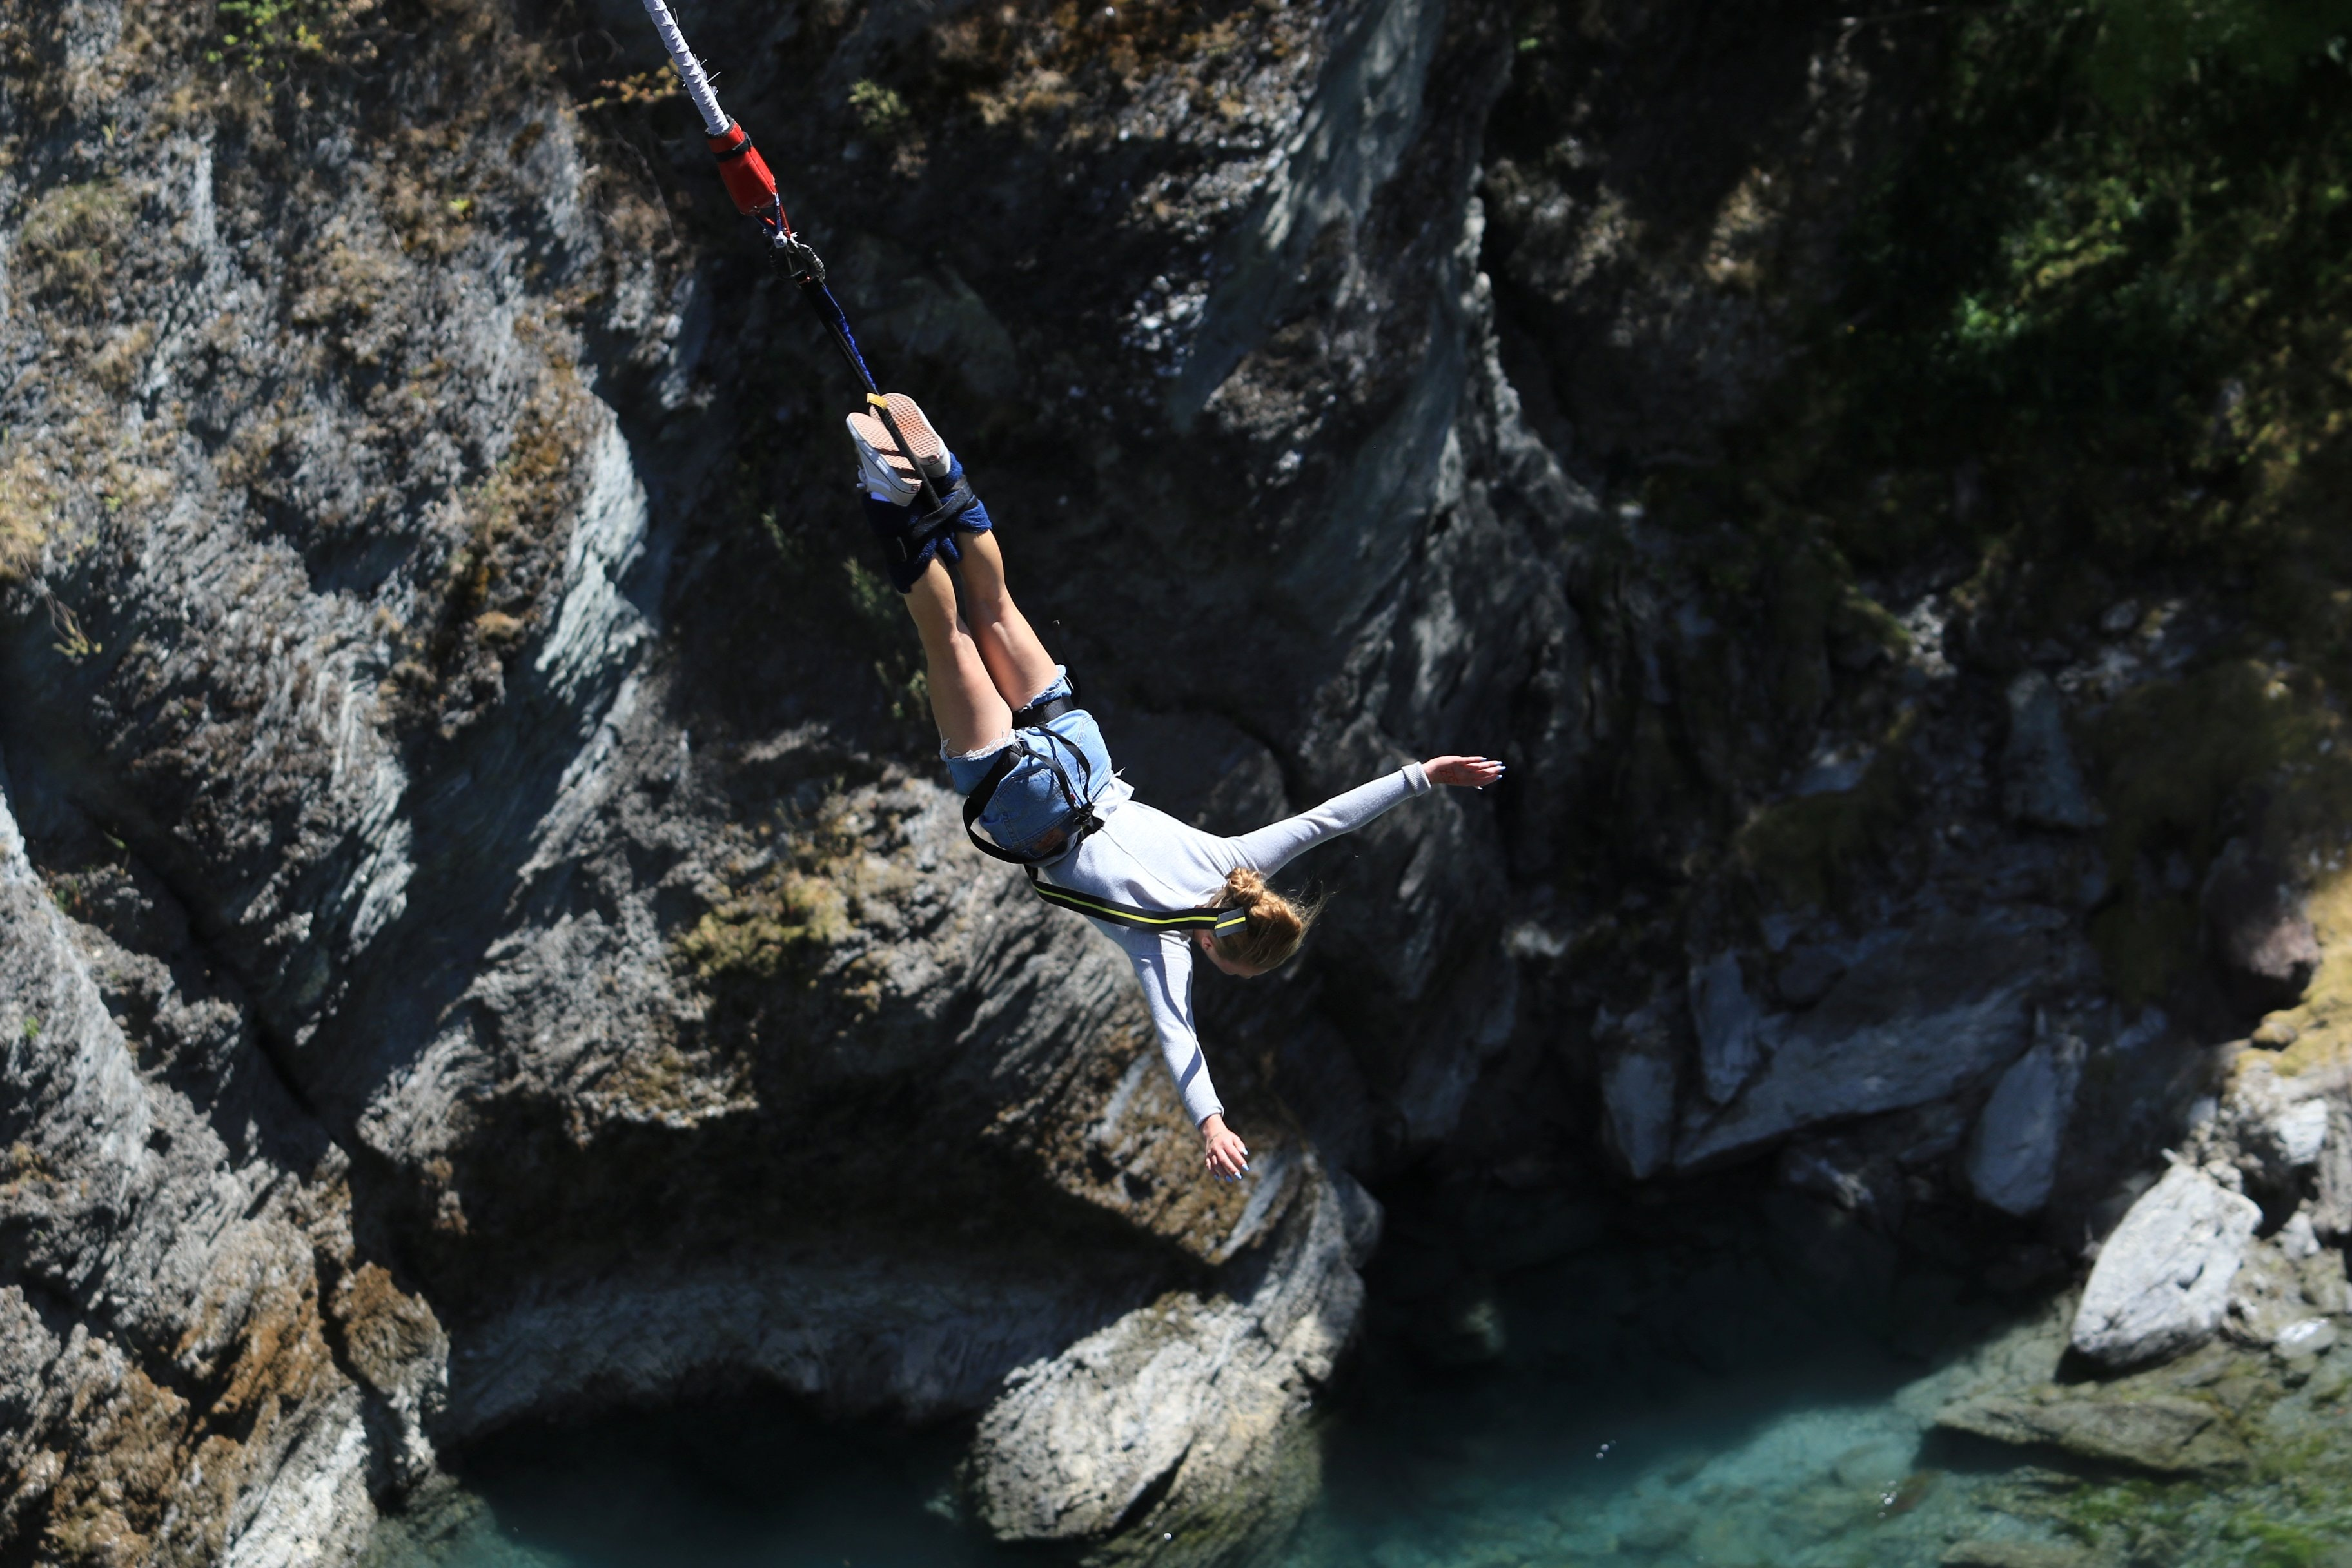 person doing bungee jumping